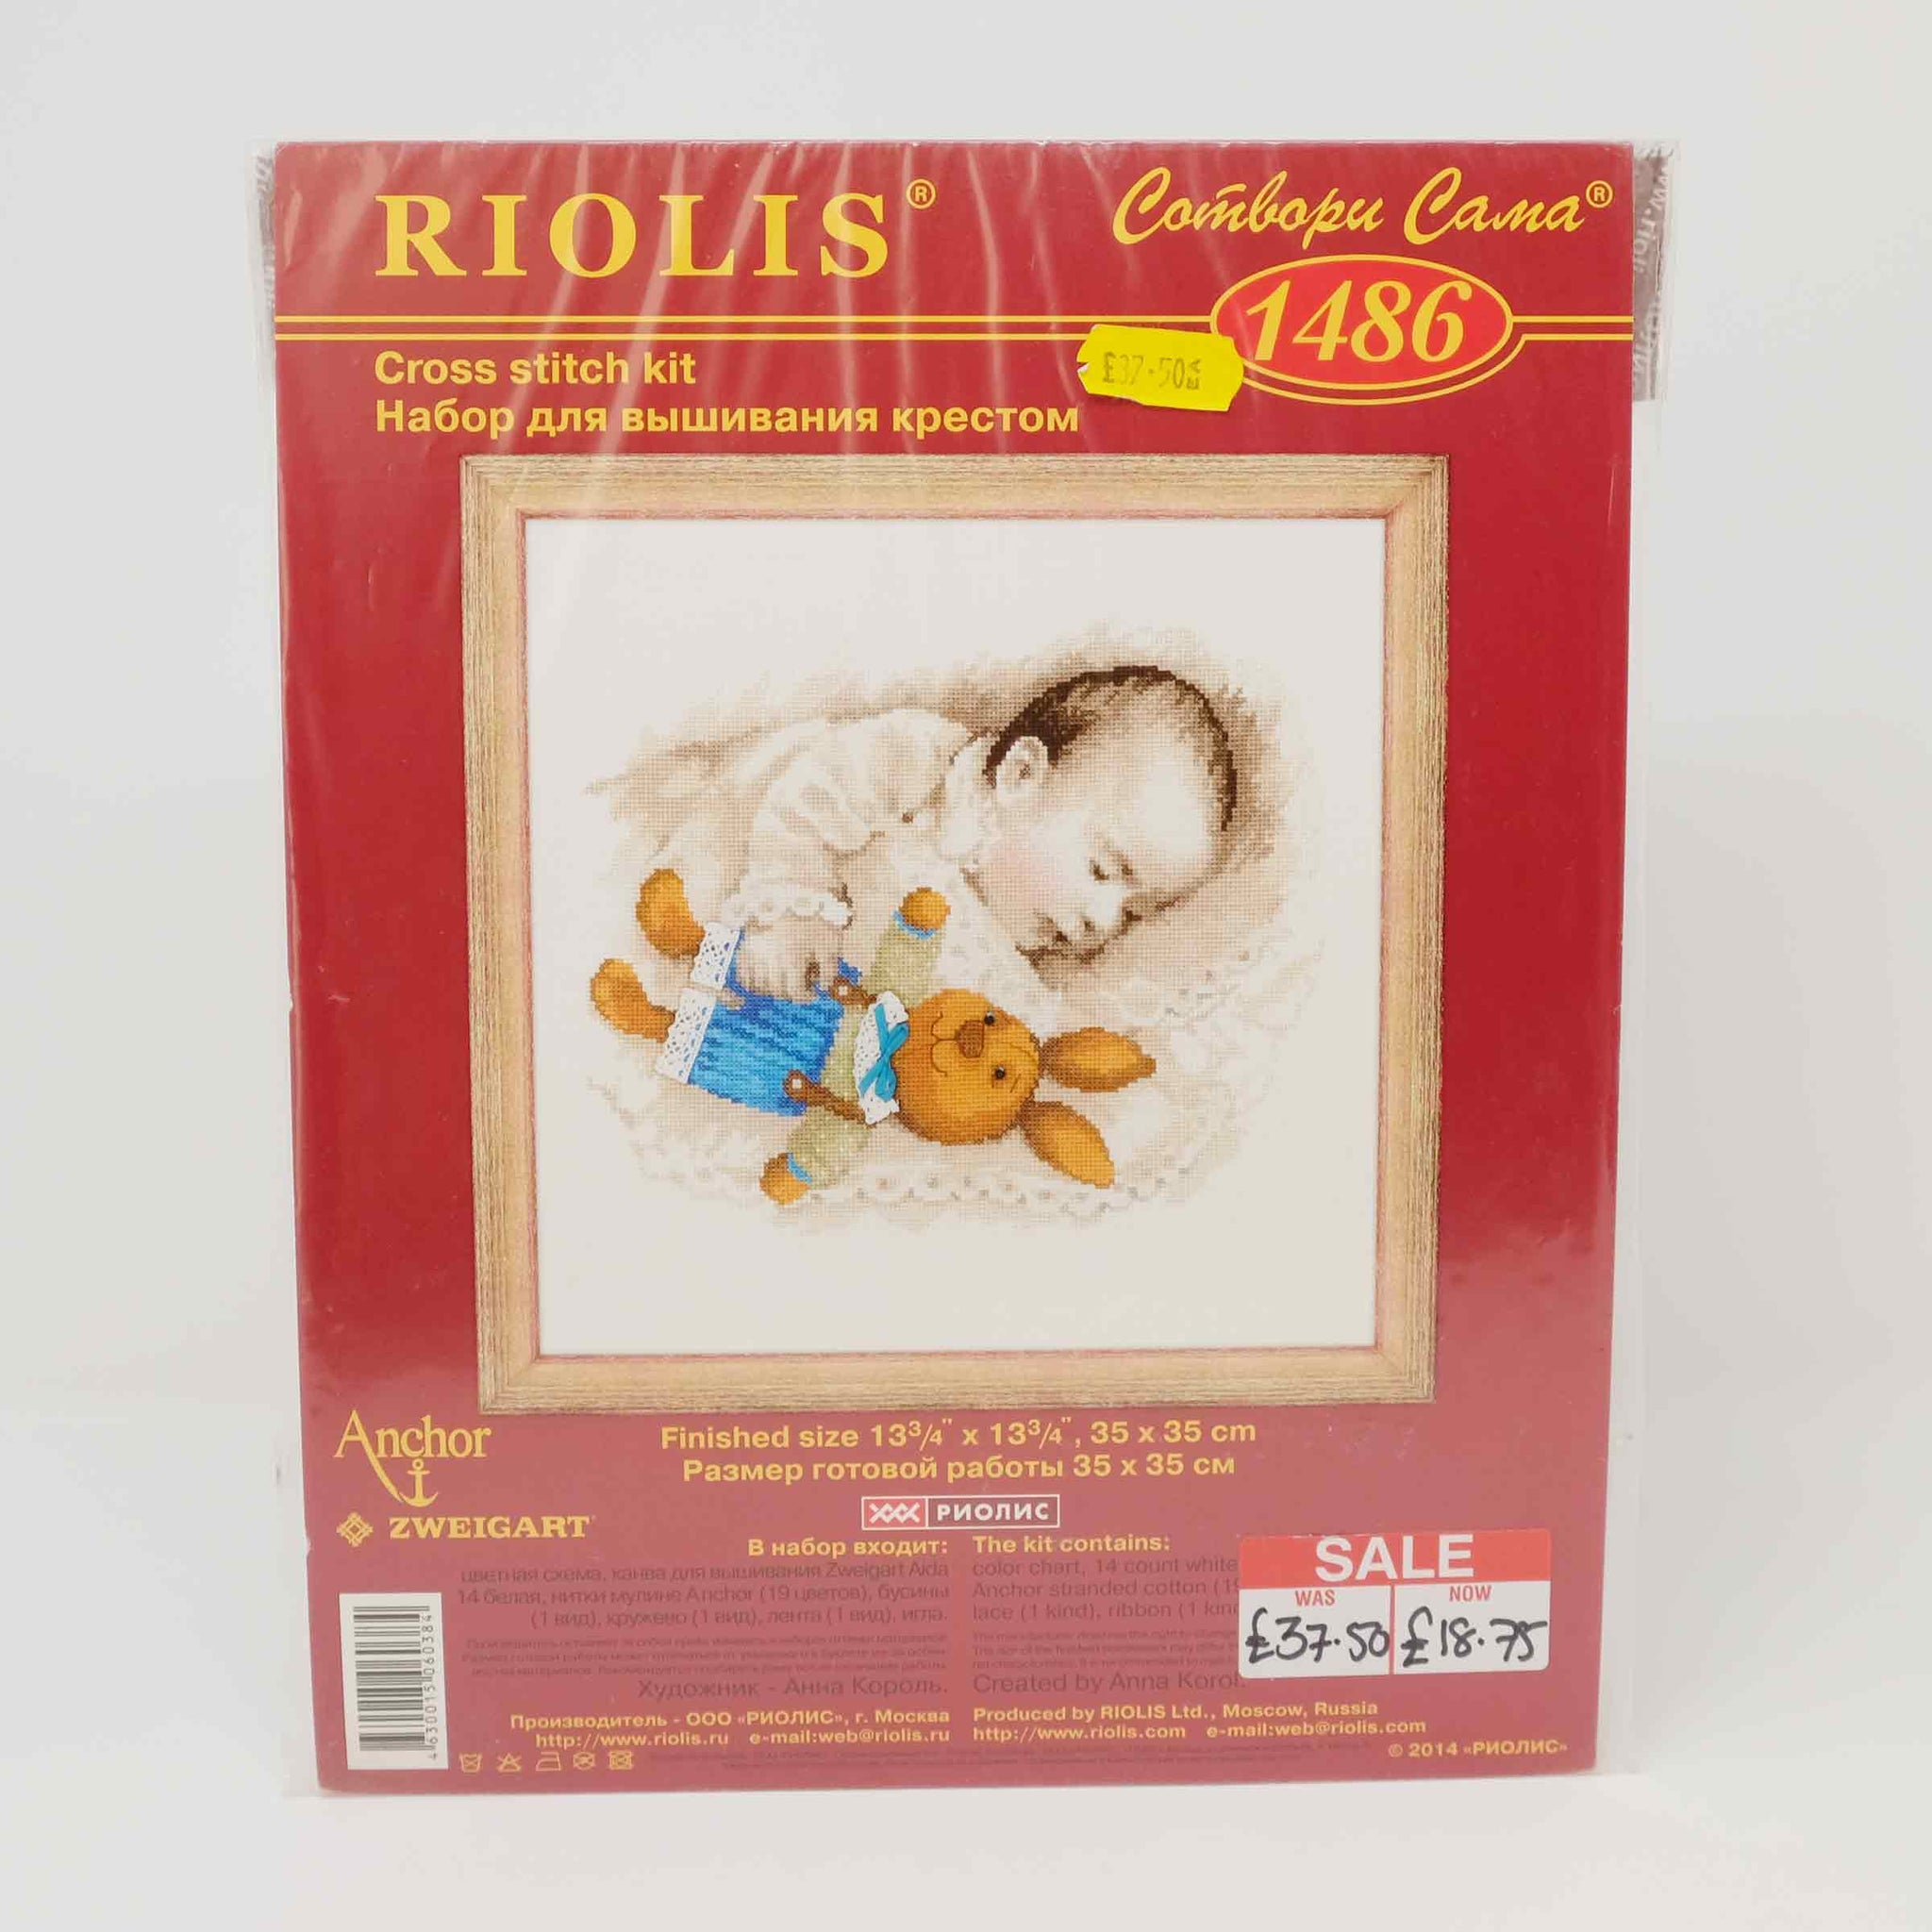 Riolis - 1486 Sweet Dreams Counted Cross Stitch